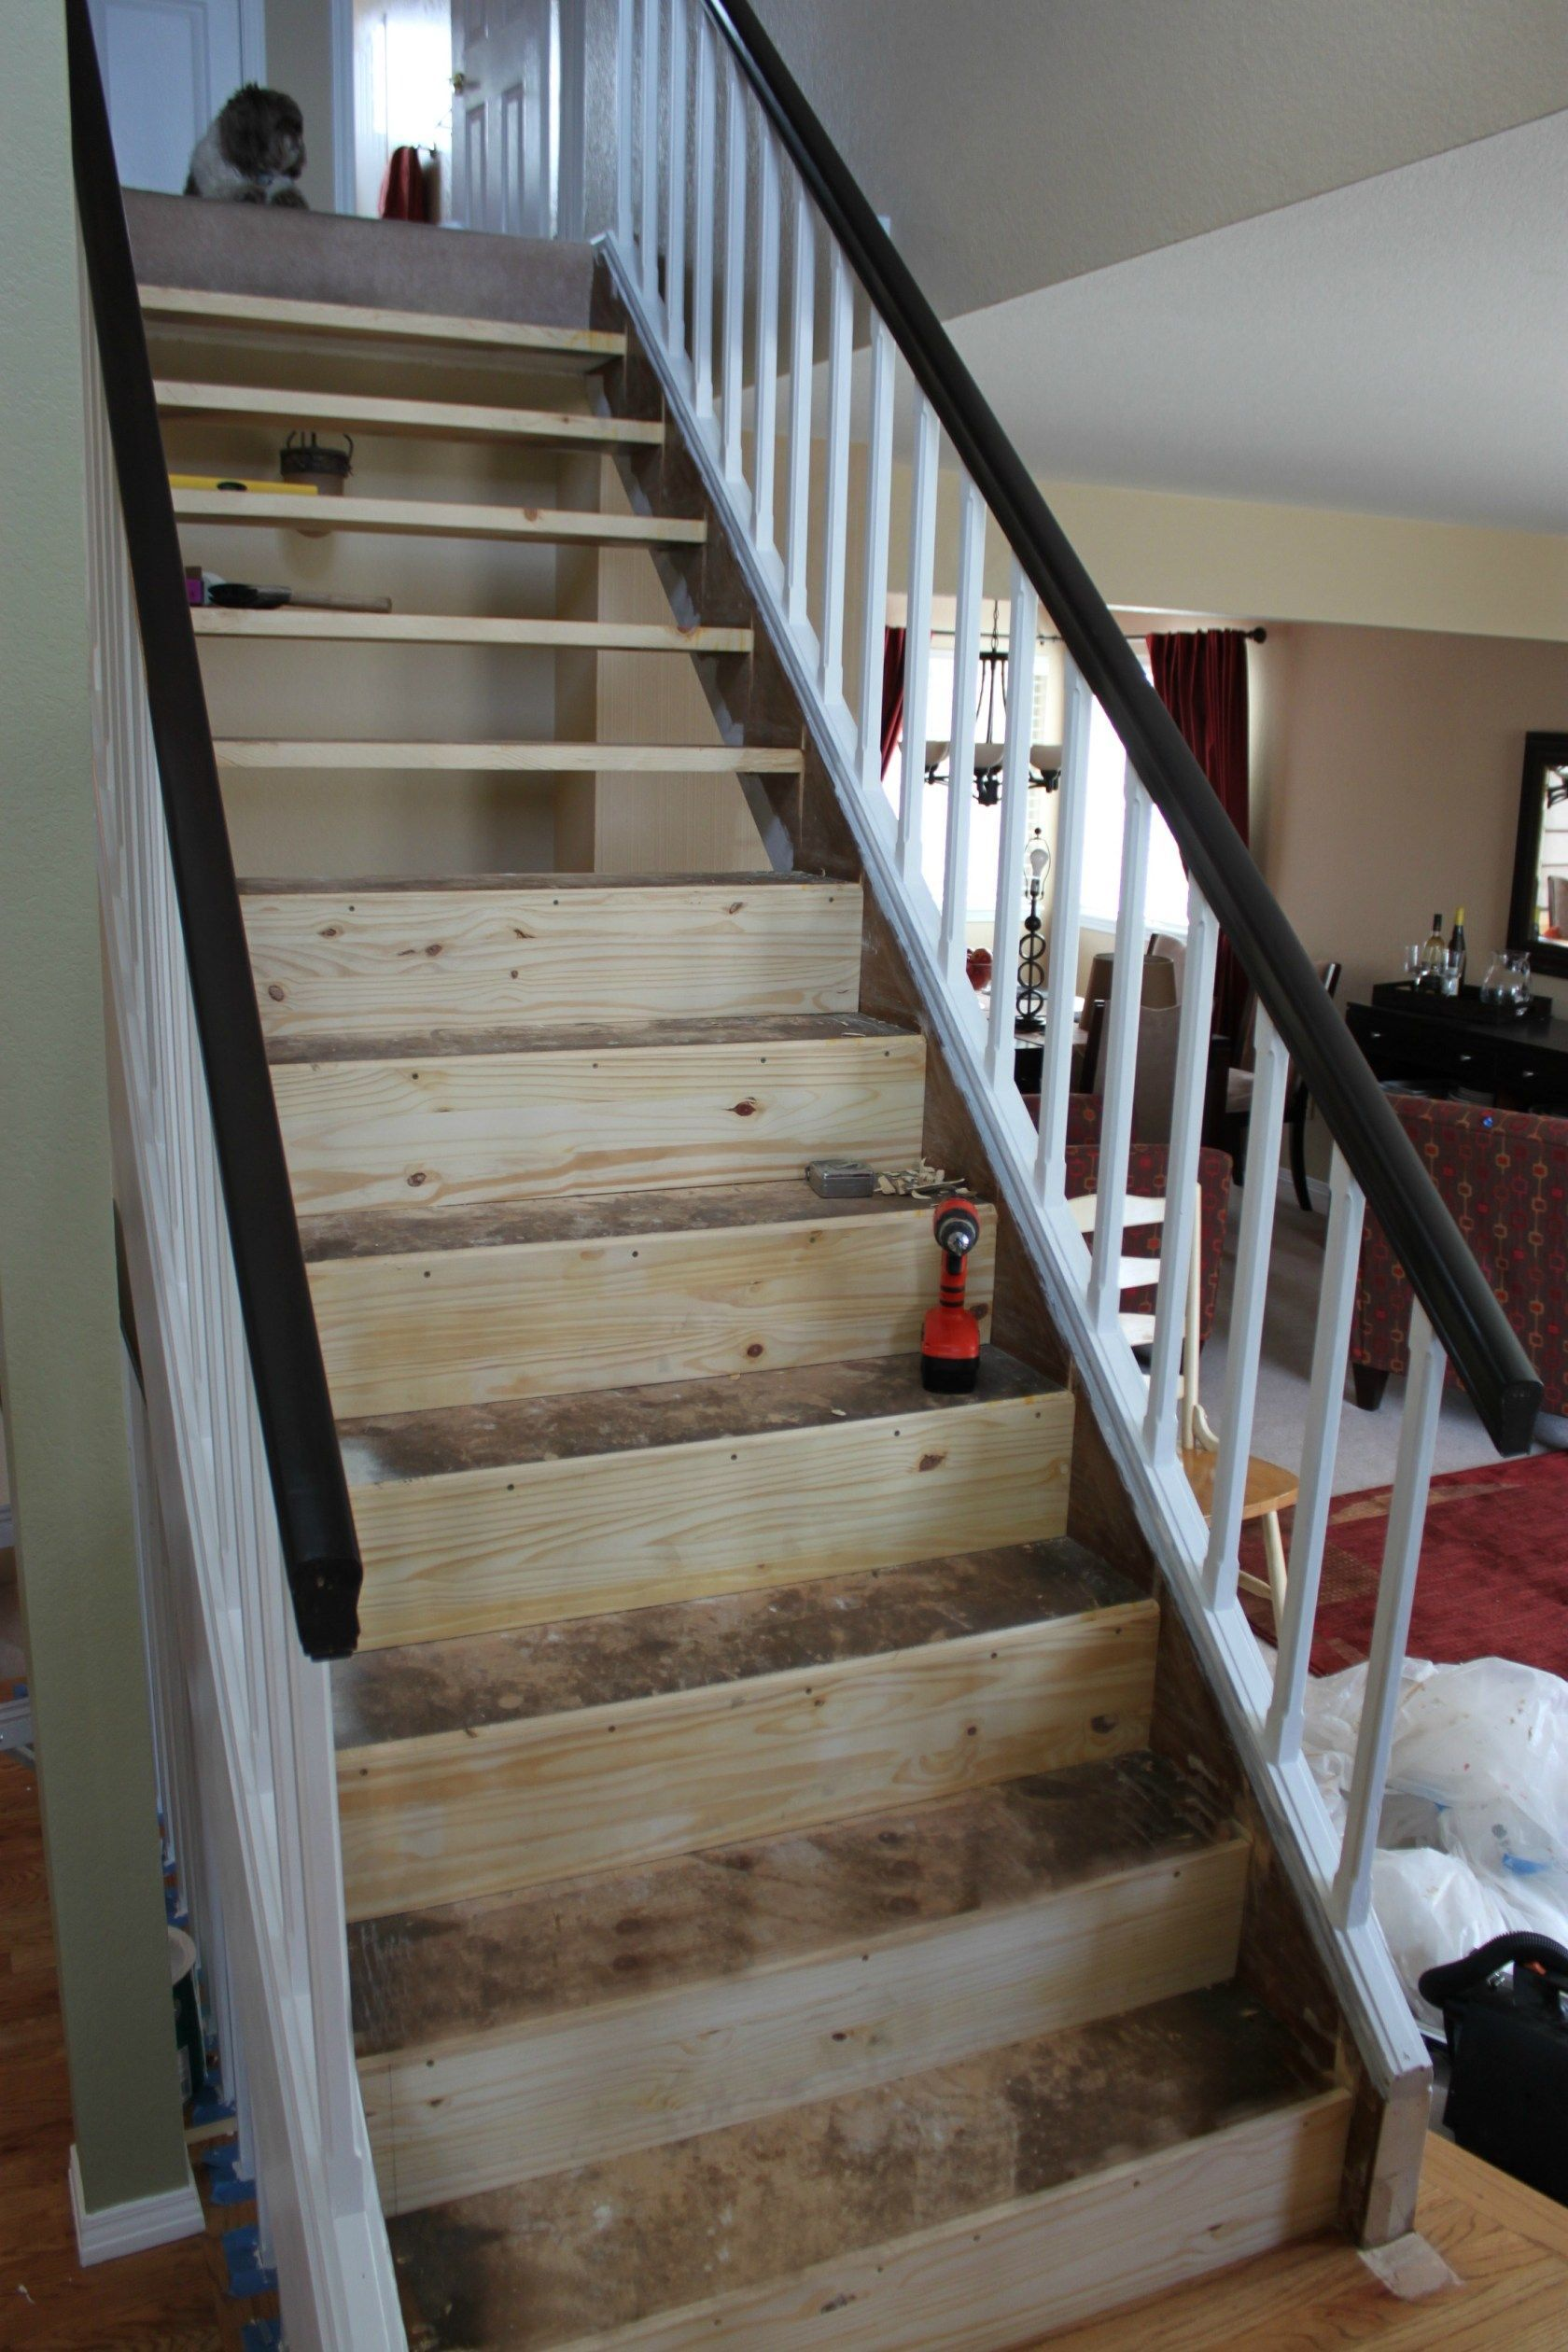 Captivating DIY Stairway Makeover. Open Tread Stairway Remodel Before And After. I  Closed In The Open Tread Stairs With Dark Oak Treads And White Risers.